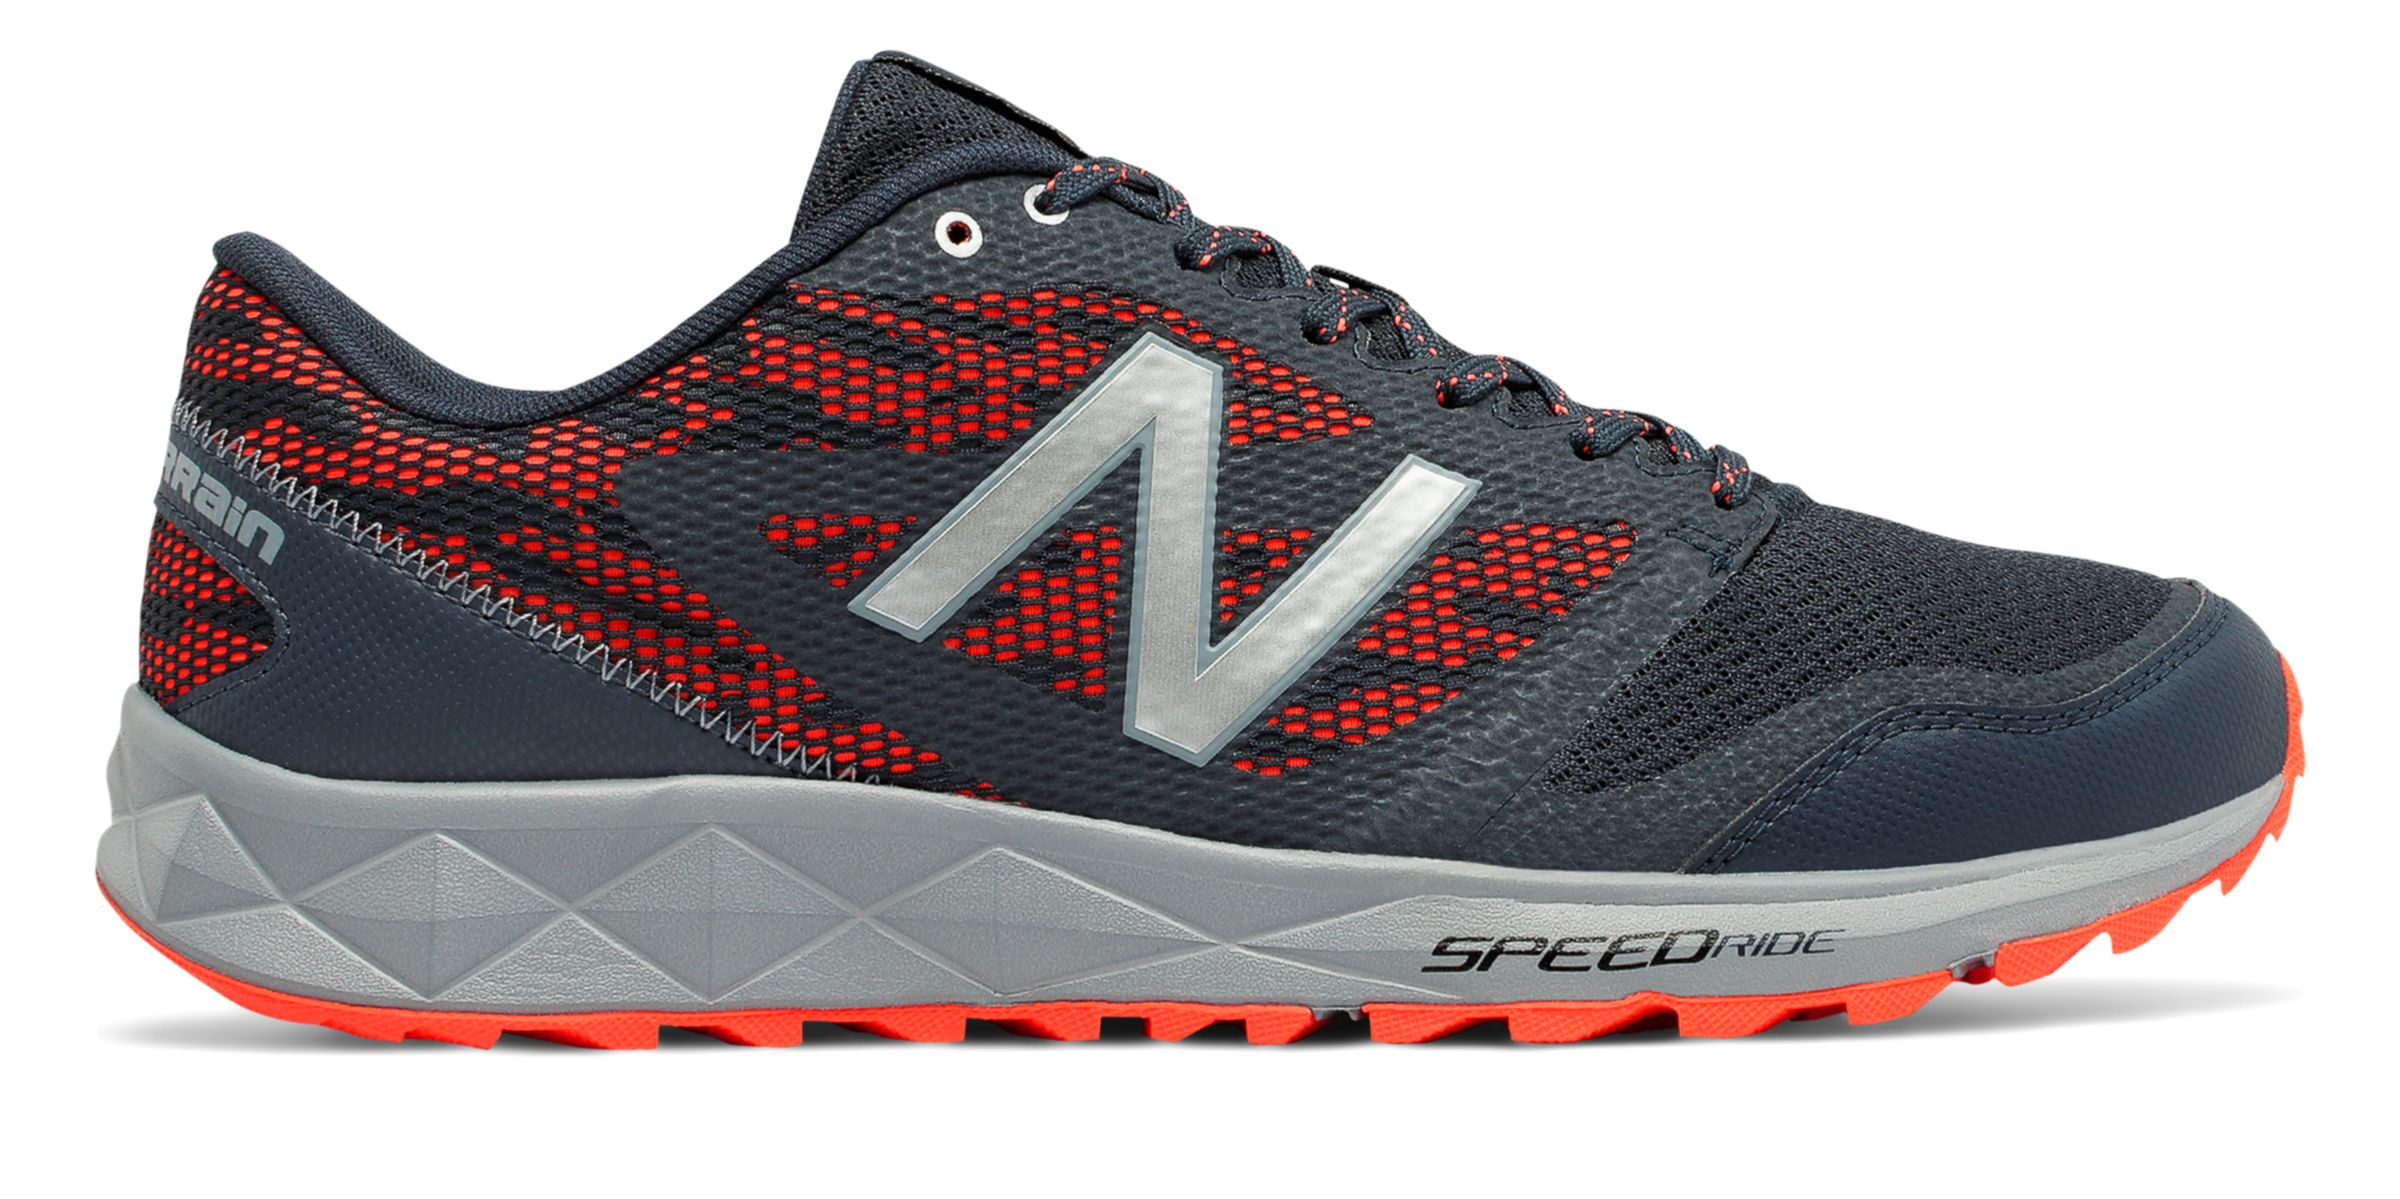 promo code 311ee 0e453 Fitness Mania – New Balance 590v2 Trail Men's Running Shoes – MT590RO2